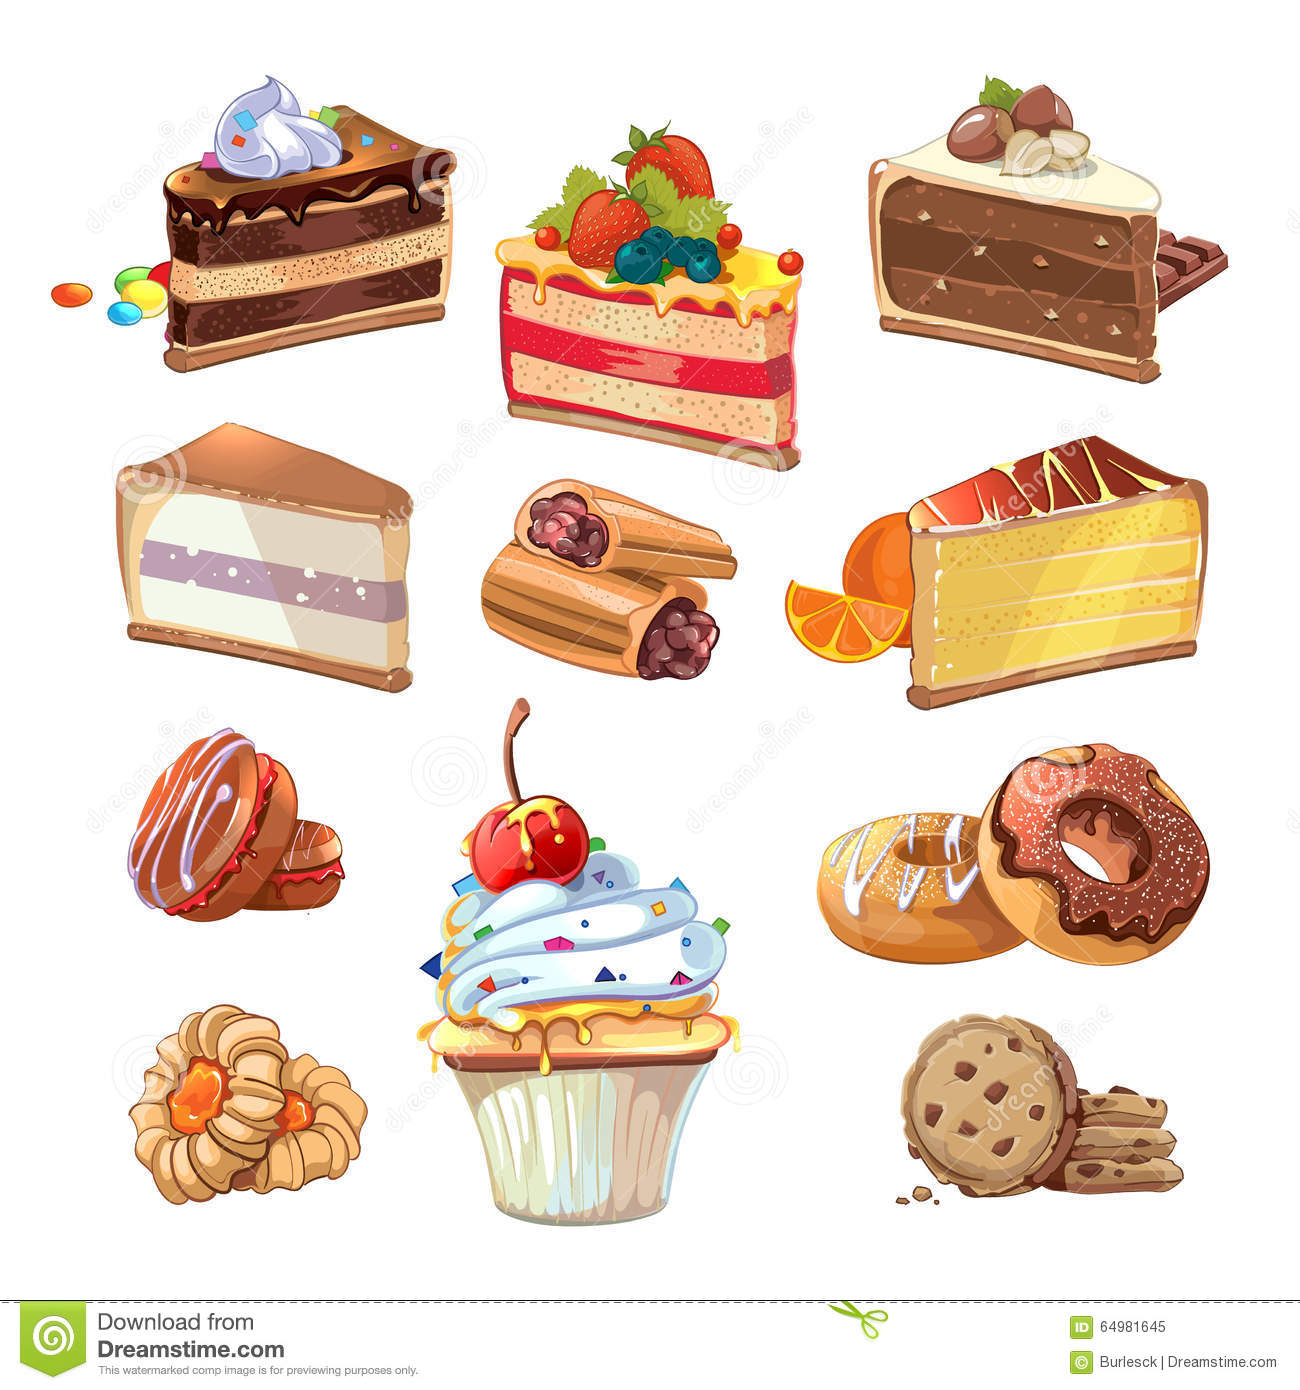 Licenses To Set Up A Cake Shop